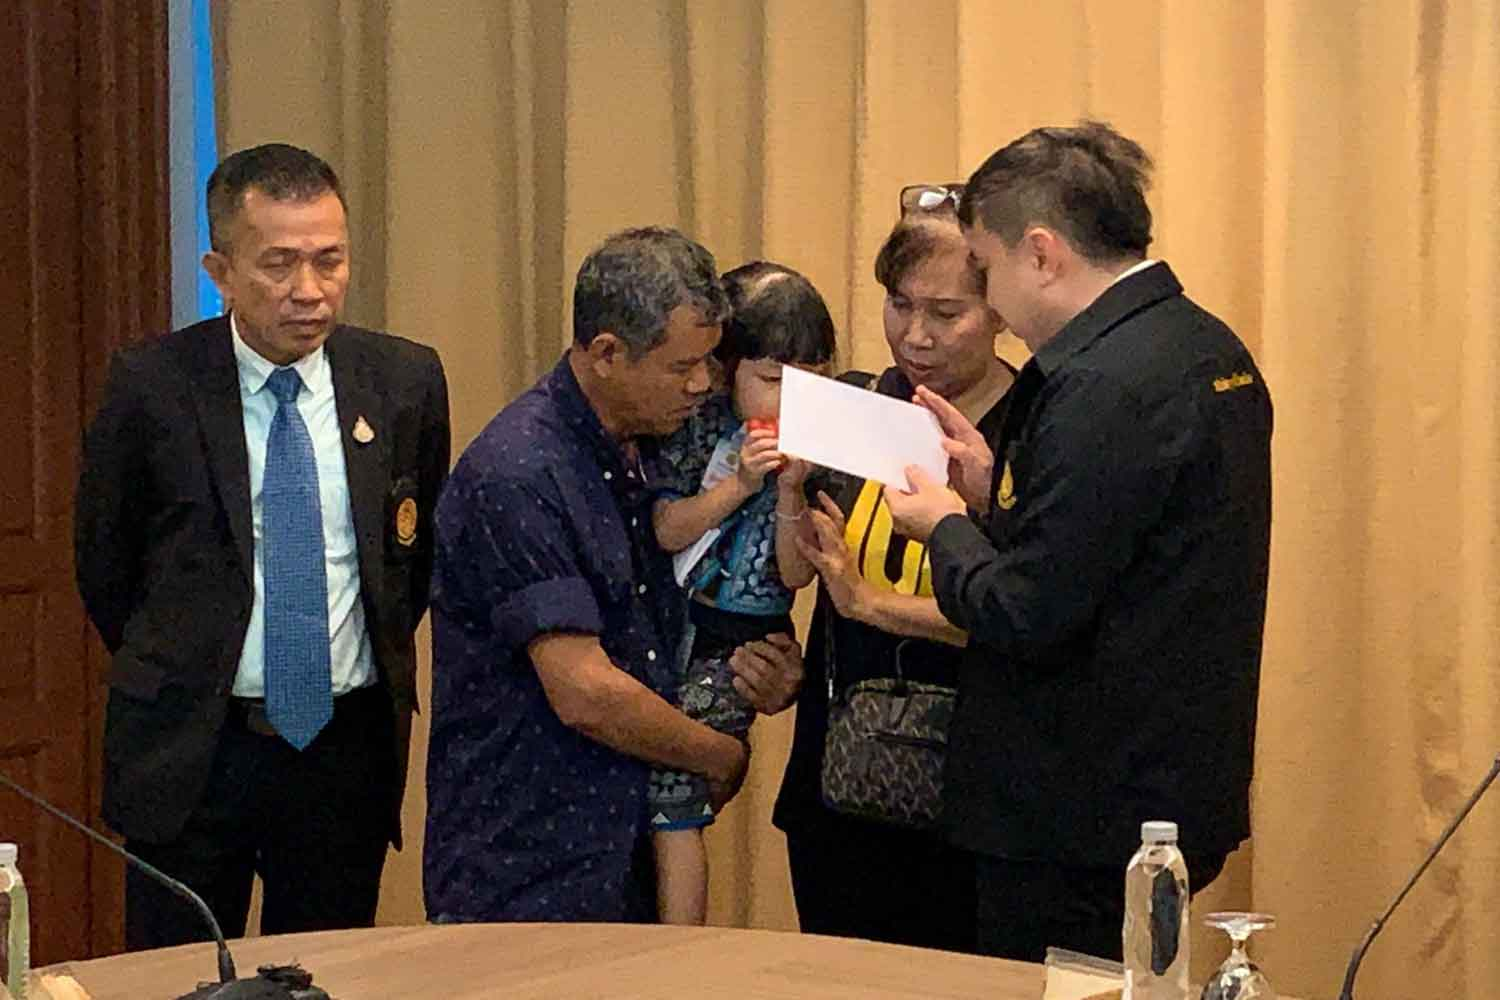 The parents of deceased product presenter Thitima Noraphanpiphat, with her three-year-old child, file their request for a second autopsy at the Justice Ministry in Bangkok on Thursday. (Photo supplied)